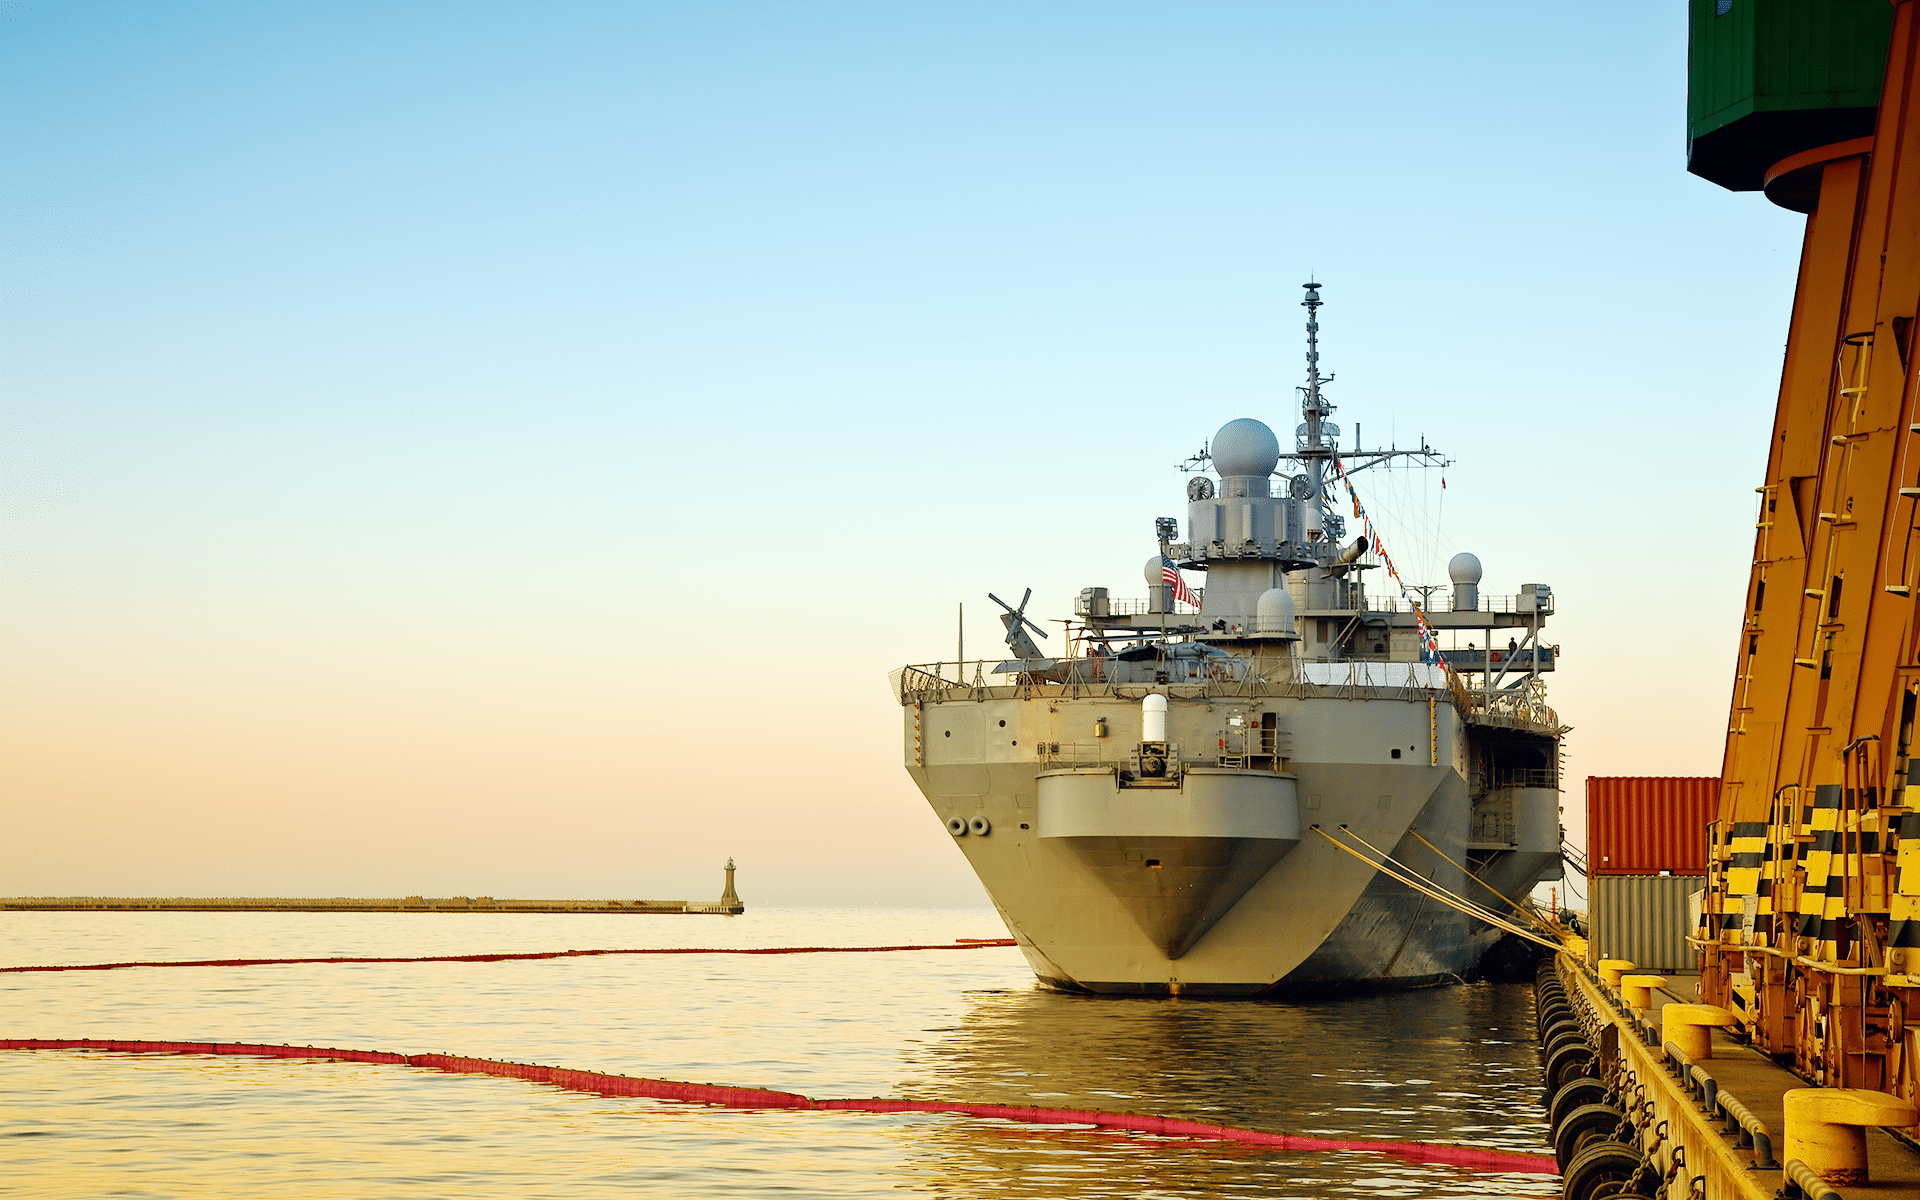 A Navy ship on the water in a harbor.